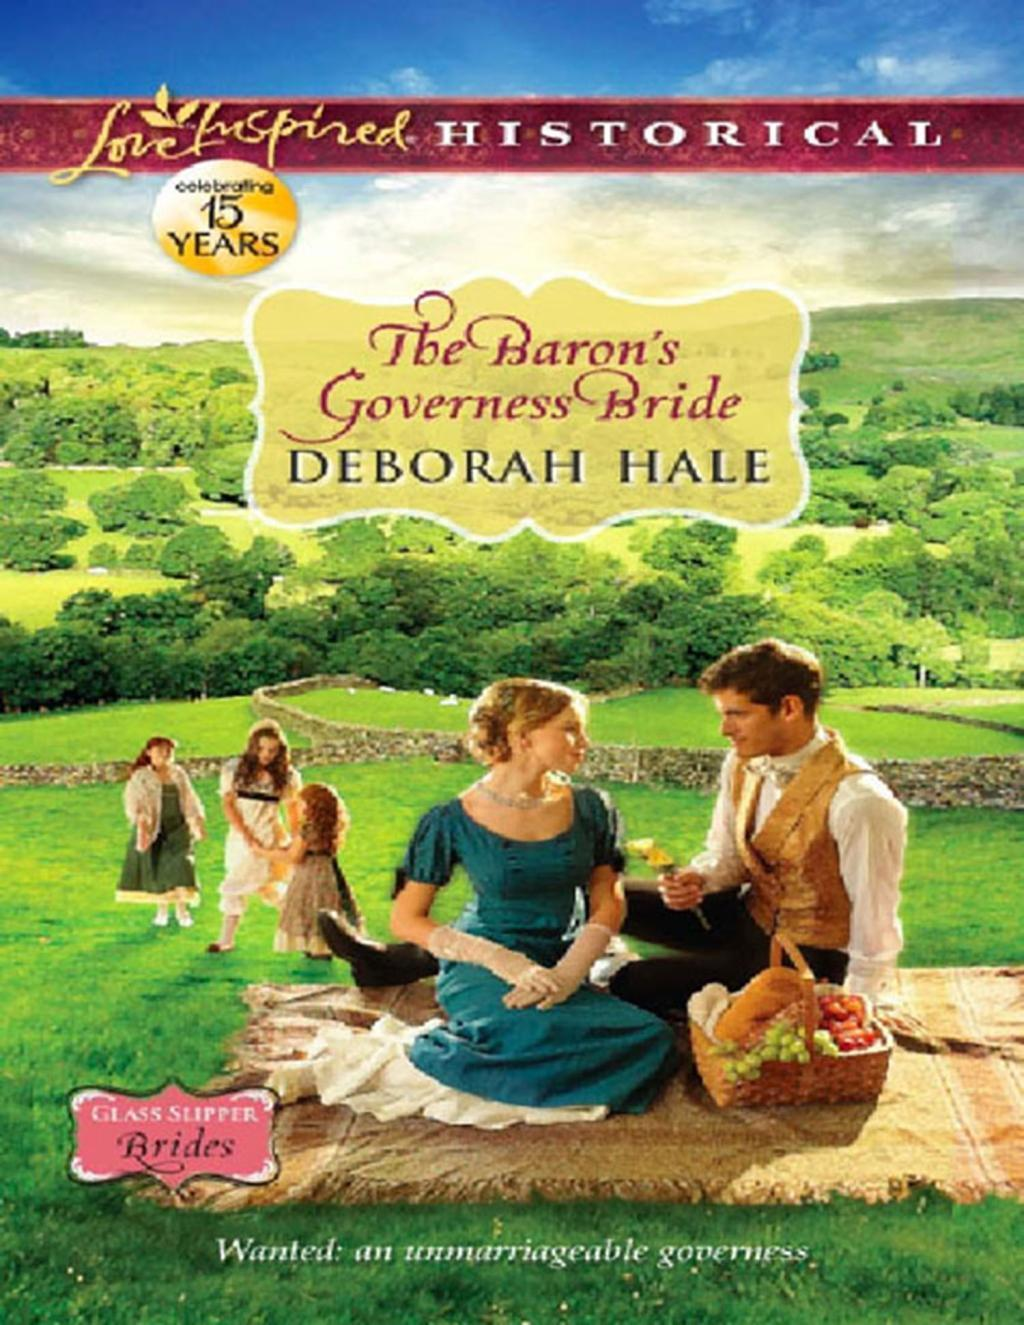 The Baron's Governess Bride (Mills & Boon Love Inspired Historical) (Glass Slipper Brides, Book 2)